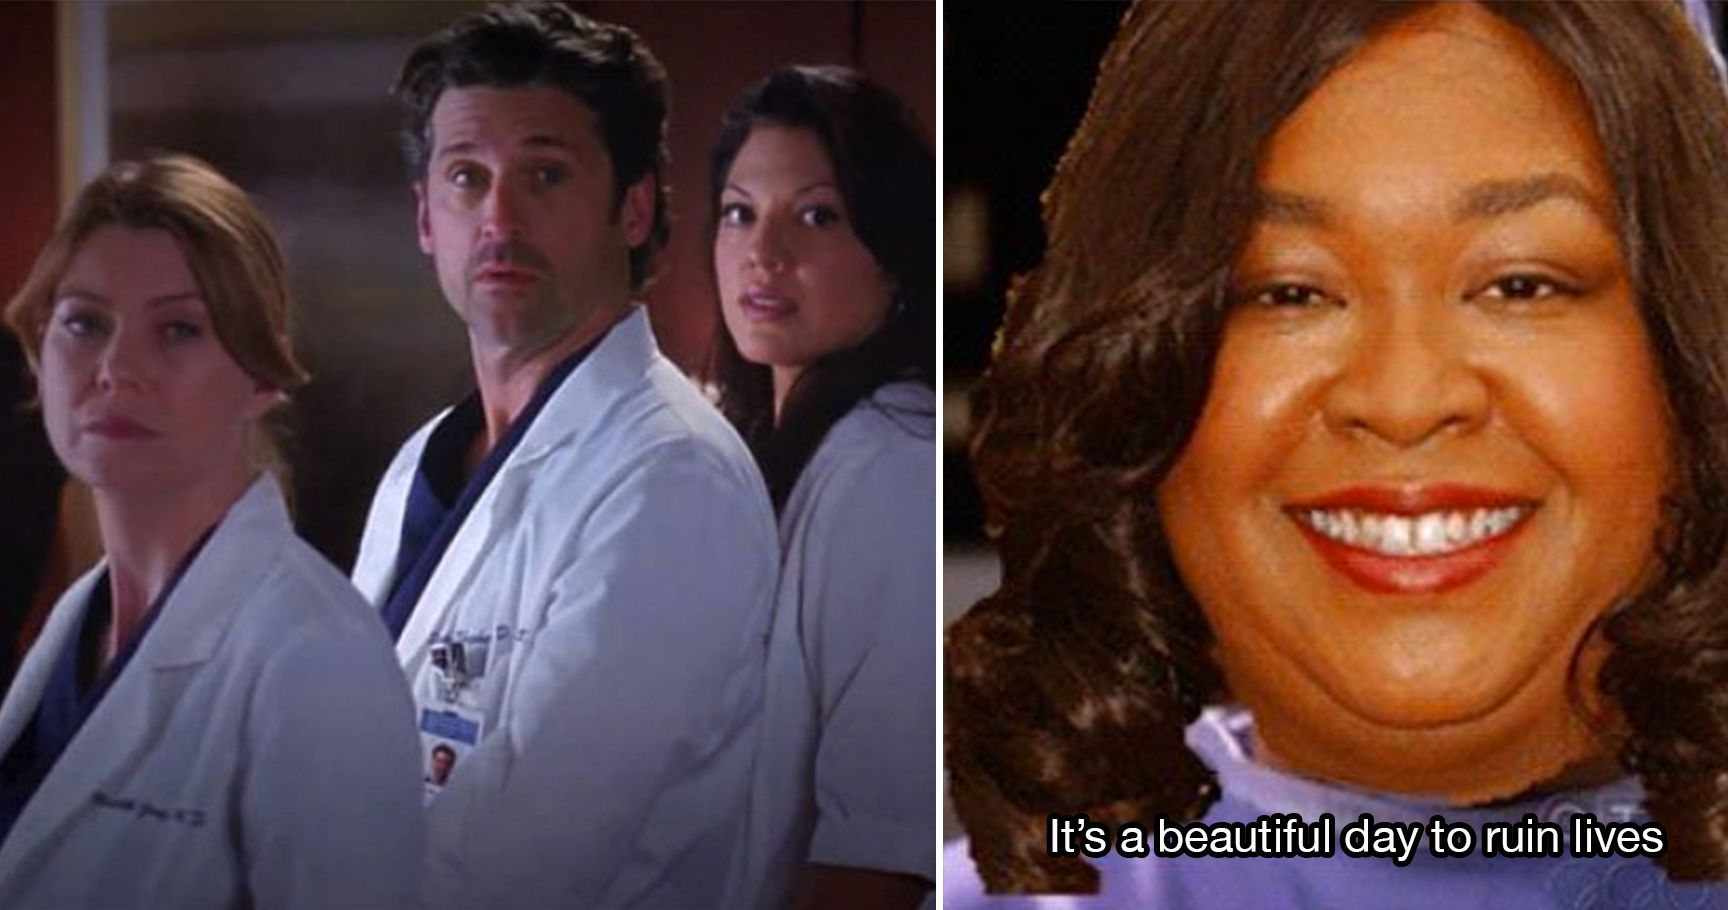 15 Juicy Secrets About 'Grey's Anatomy' Shonda Rhimes Doesn't Want Us To Know